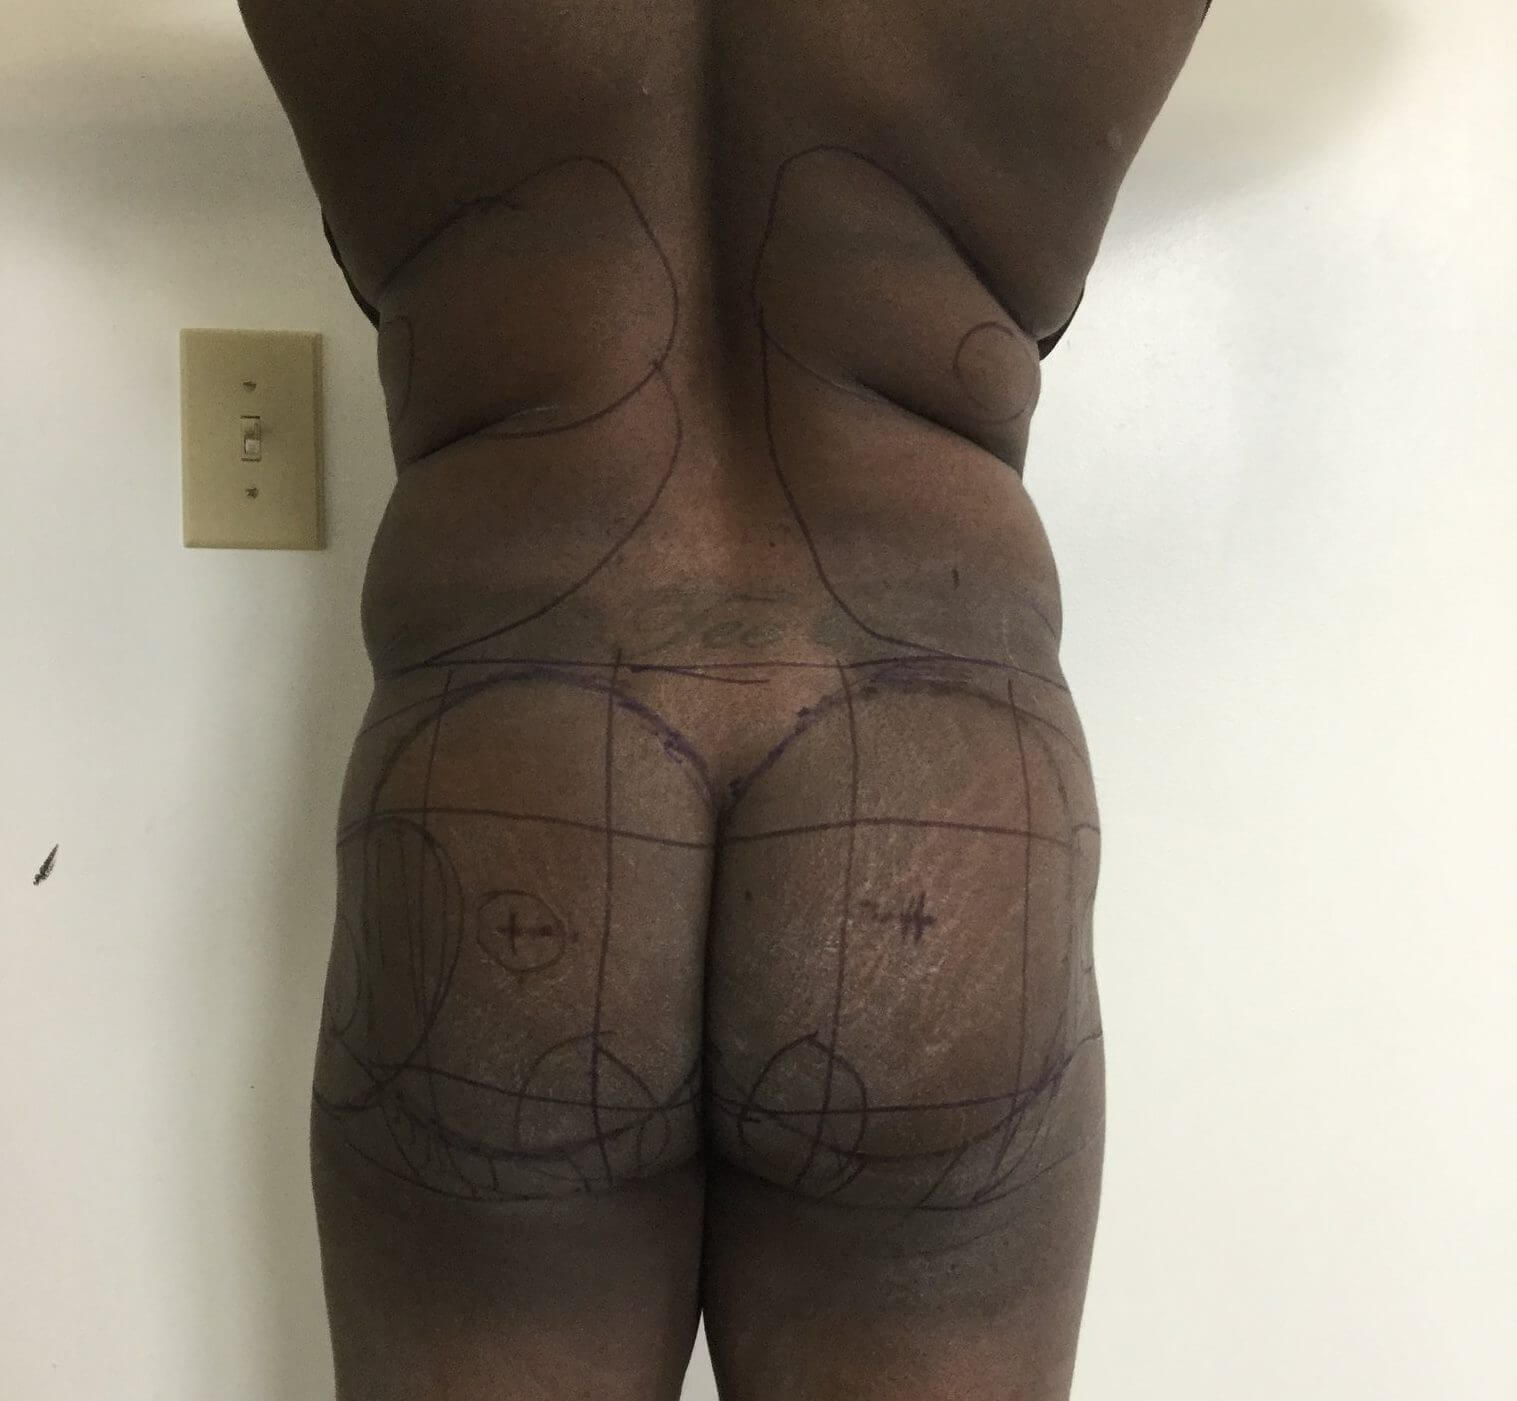 Before Lipo and Fat Transfer #Brazilian Butt Lift